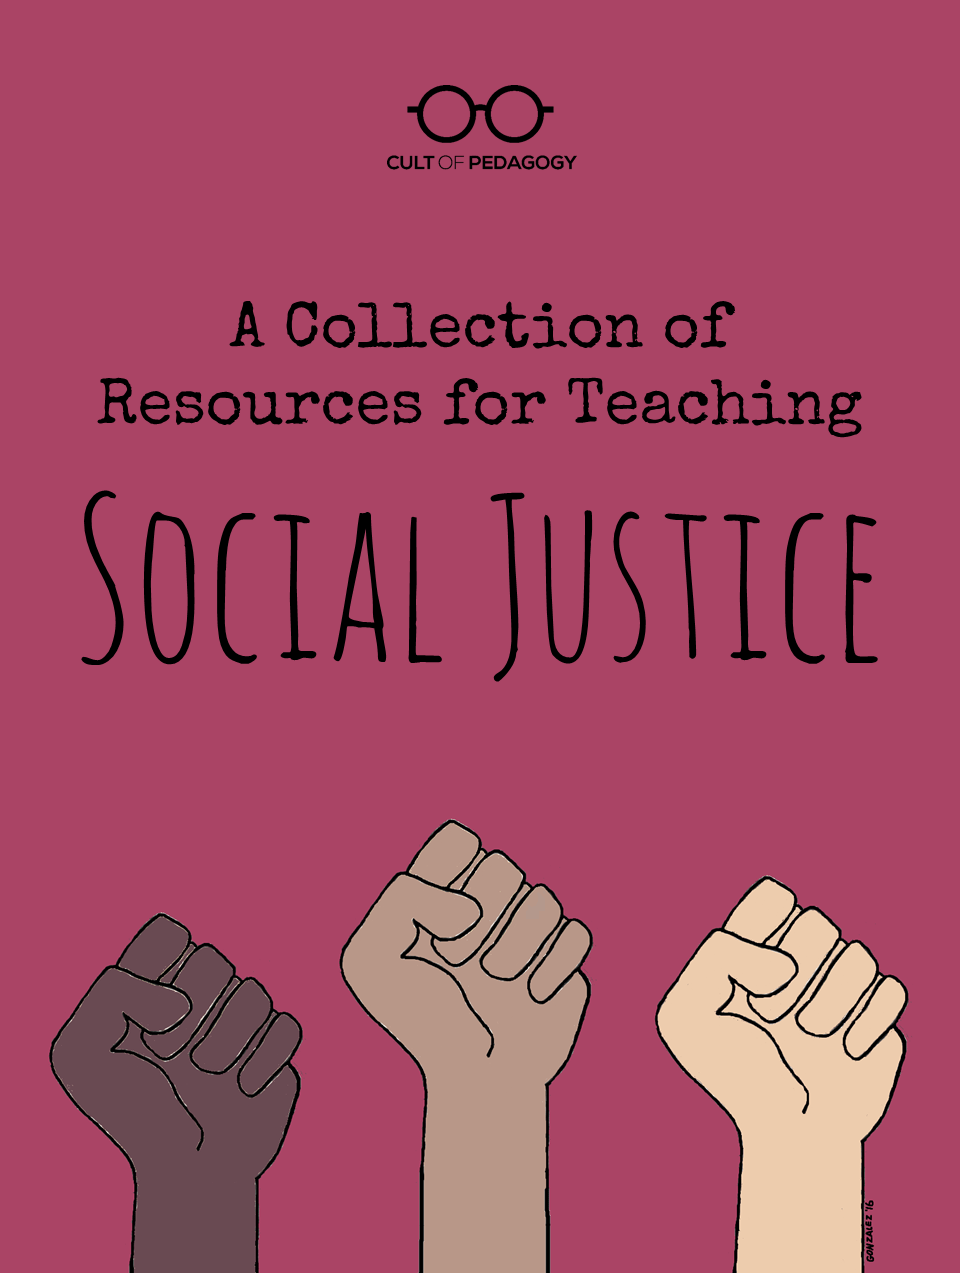 medium resolution of A Collection of Resources for Teaching Social Justice   Cult of Pedagogy